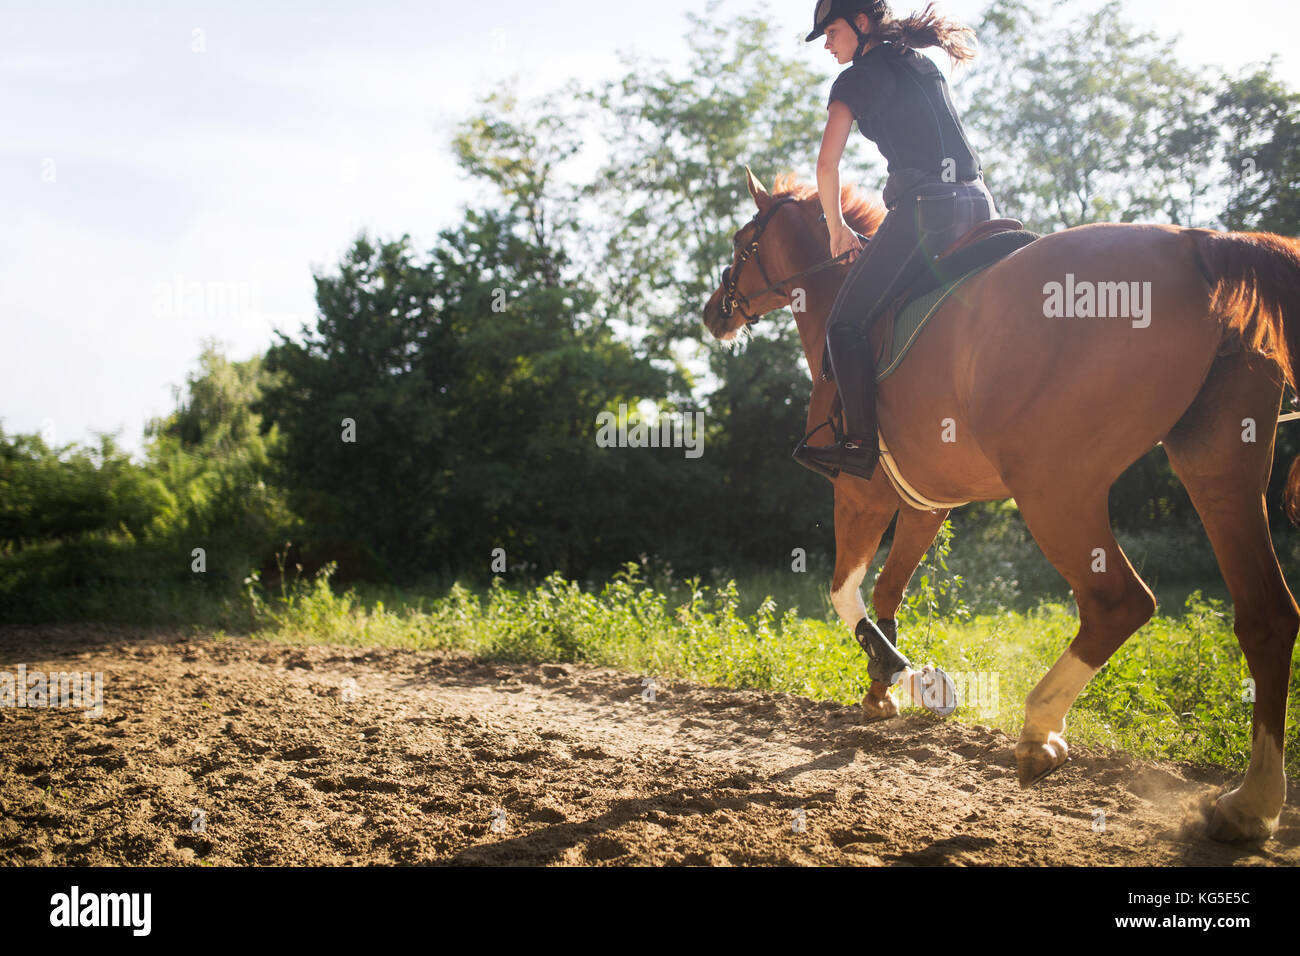 Portrait of young woman riding horse in countryside Photo Stock